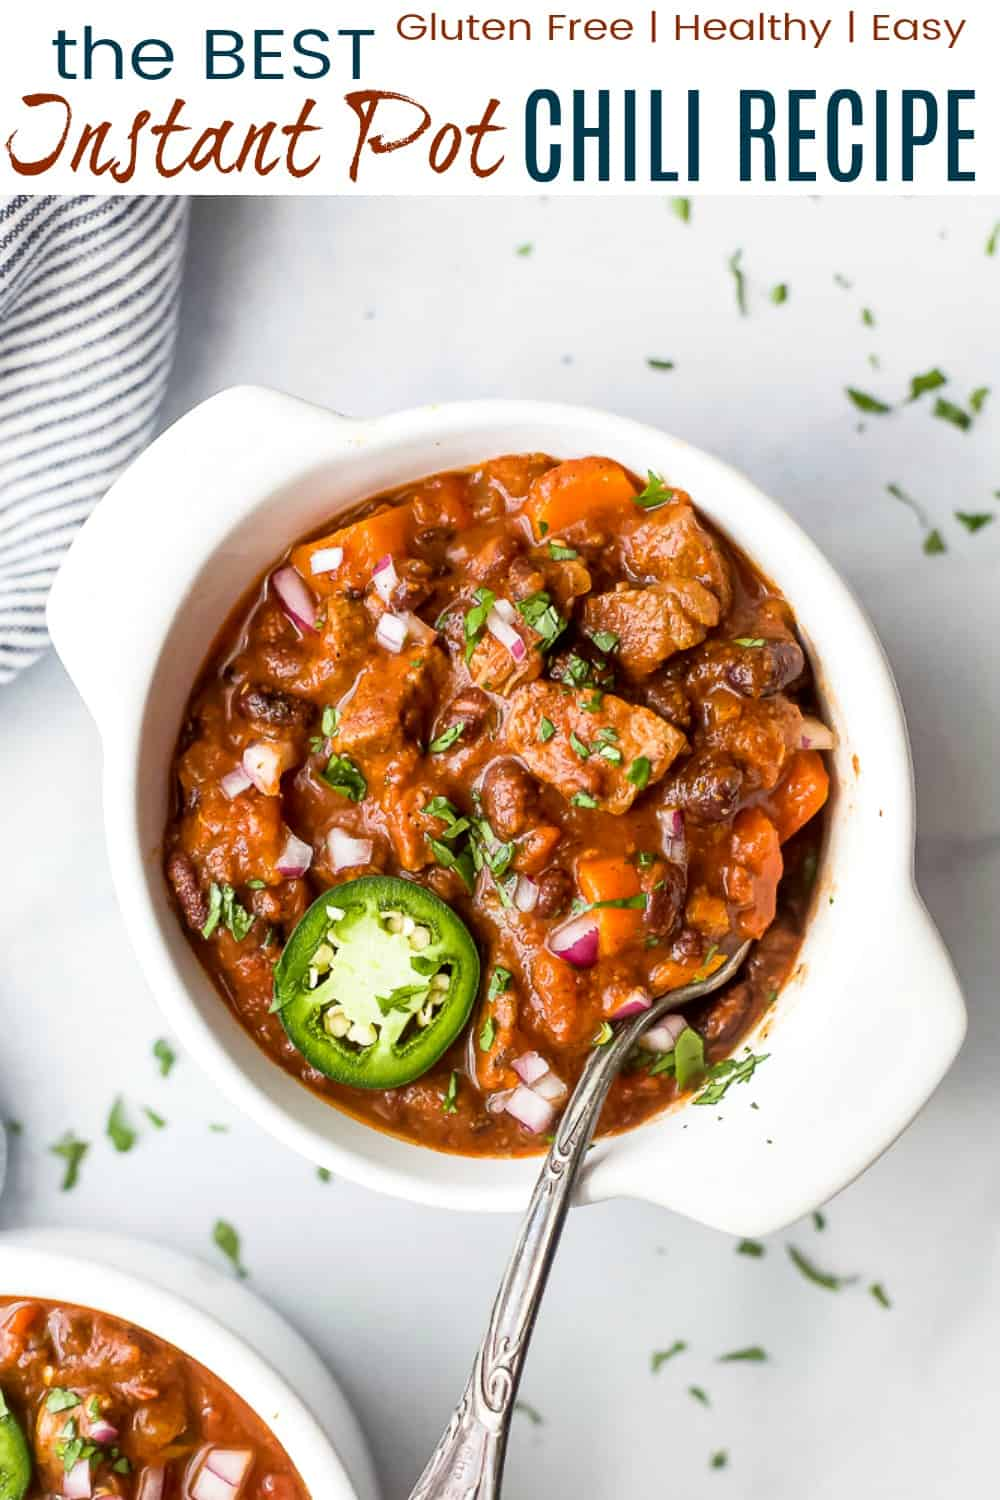 pinterest image for the best instant pot chili recipe